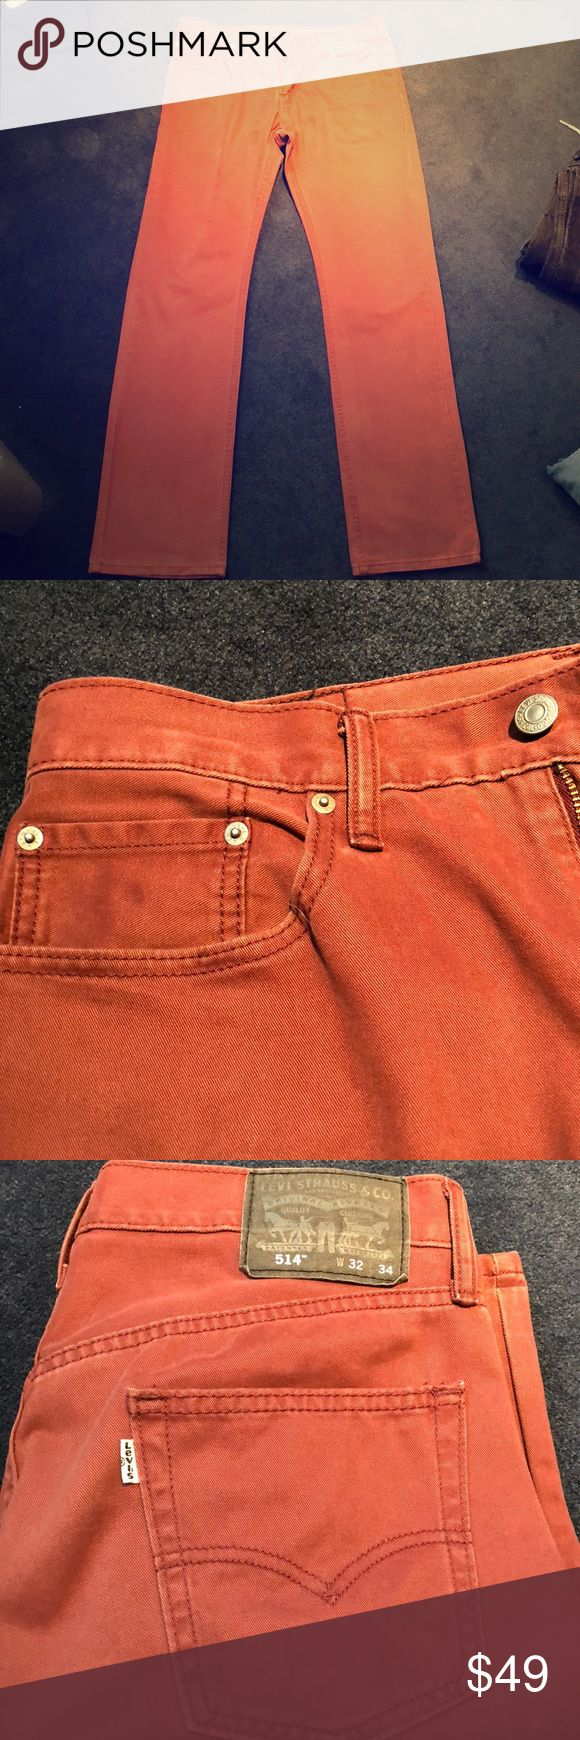 Levi 514 Mens Pants / Jeans - 32x34 - Red / Wine Gently worn - Levi 514 Mens Pants / Jeans - 32x34 - Red / Wine Levi's Pants Chinos & Khakis